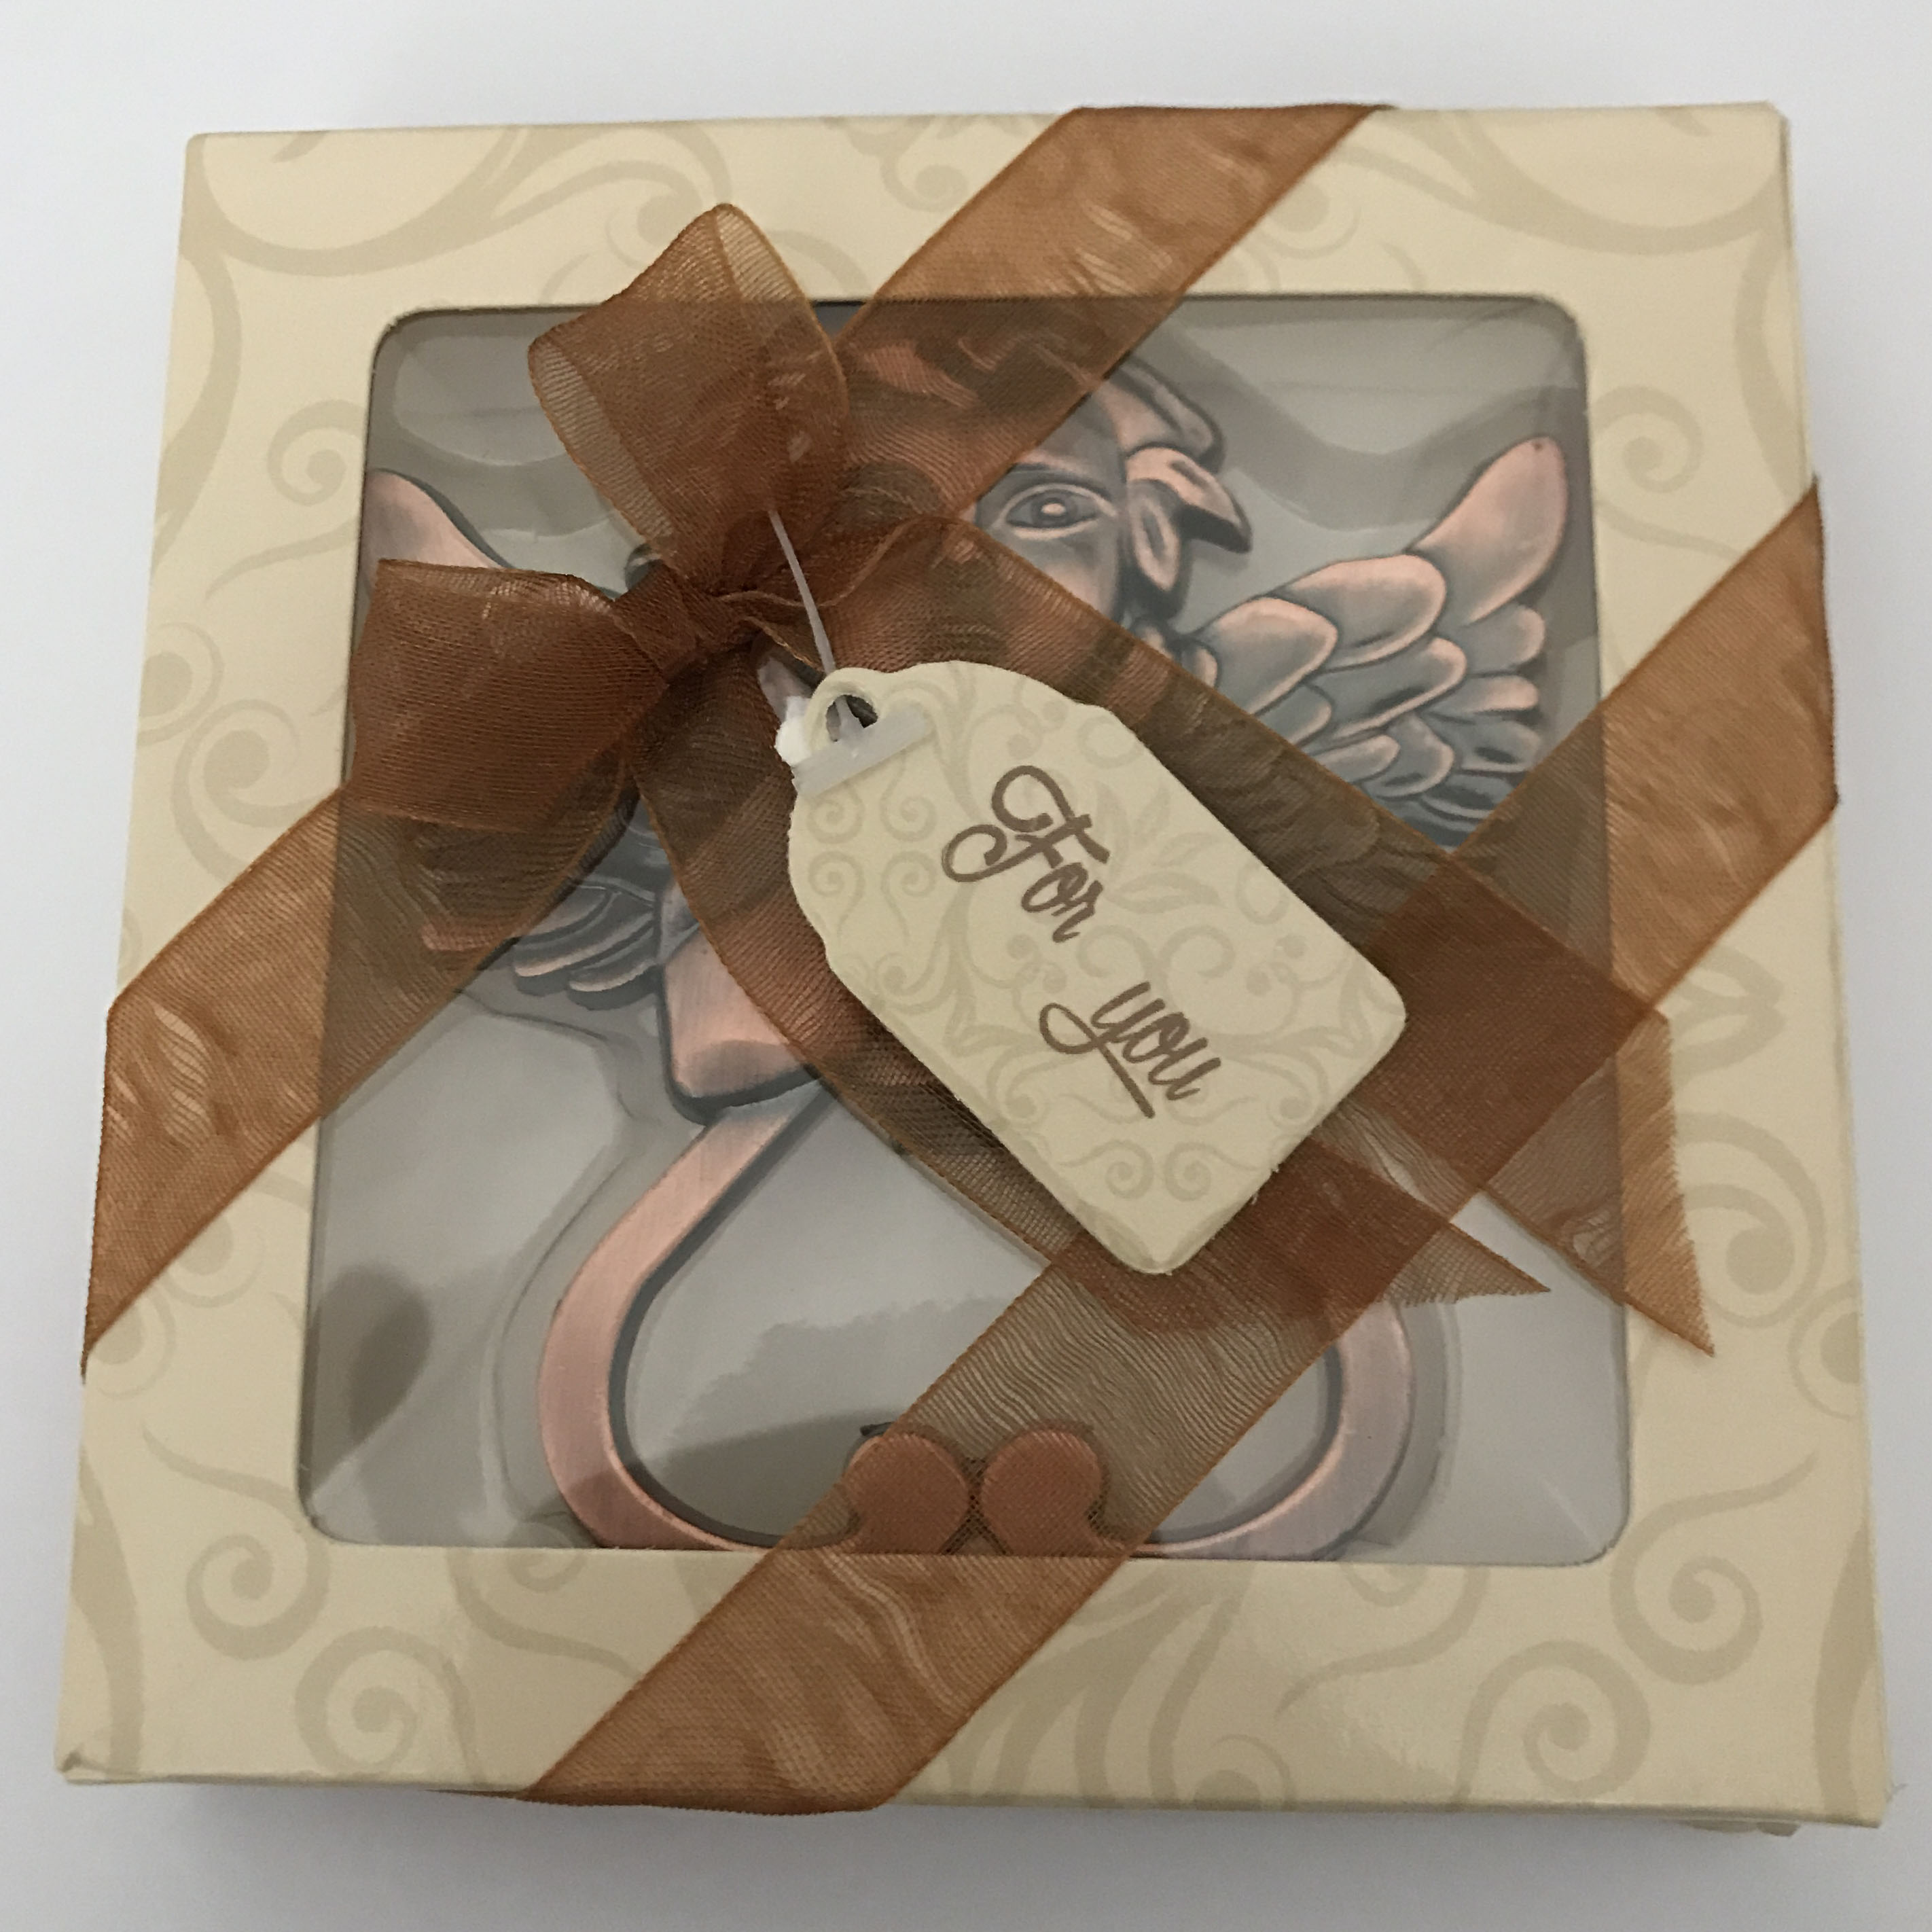 10pcs sets Little Angel Bottle Opener in Gift Box Wedding Favor Wedding Gift beer  Opener Wedding Accessories Free Shipping-in Party Favors from Home ... 317c923746b8